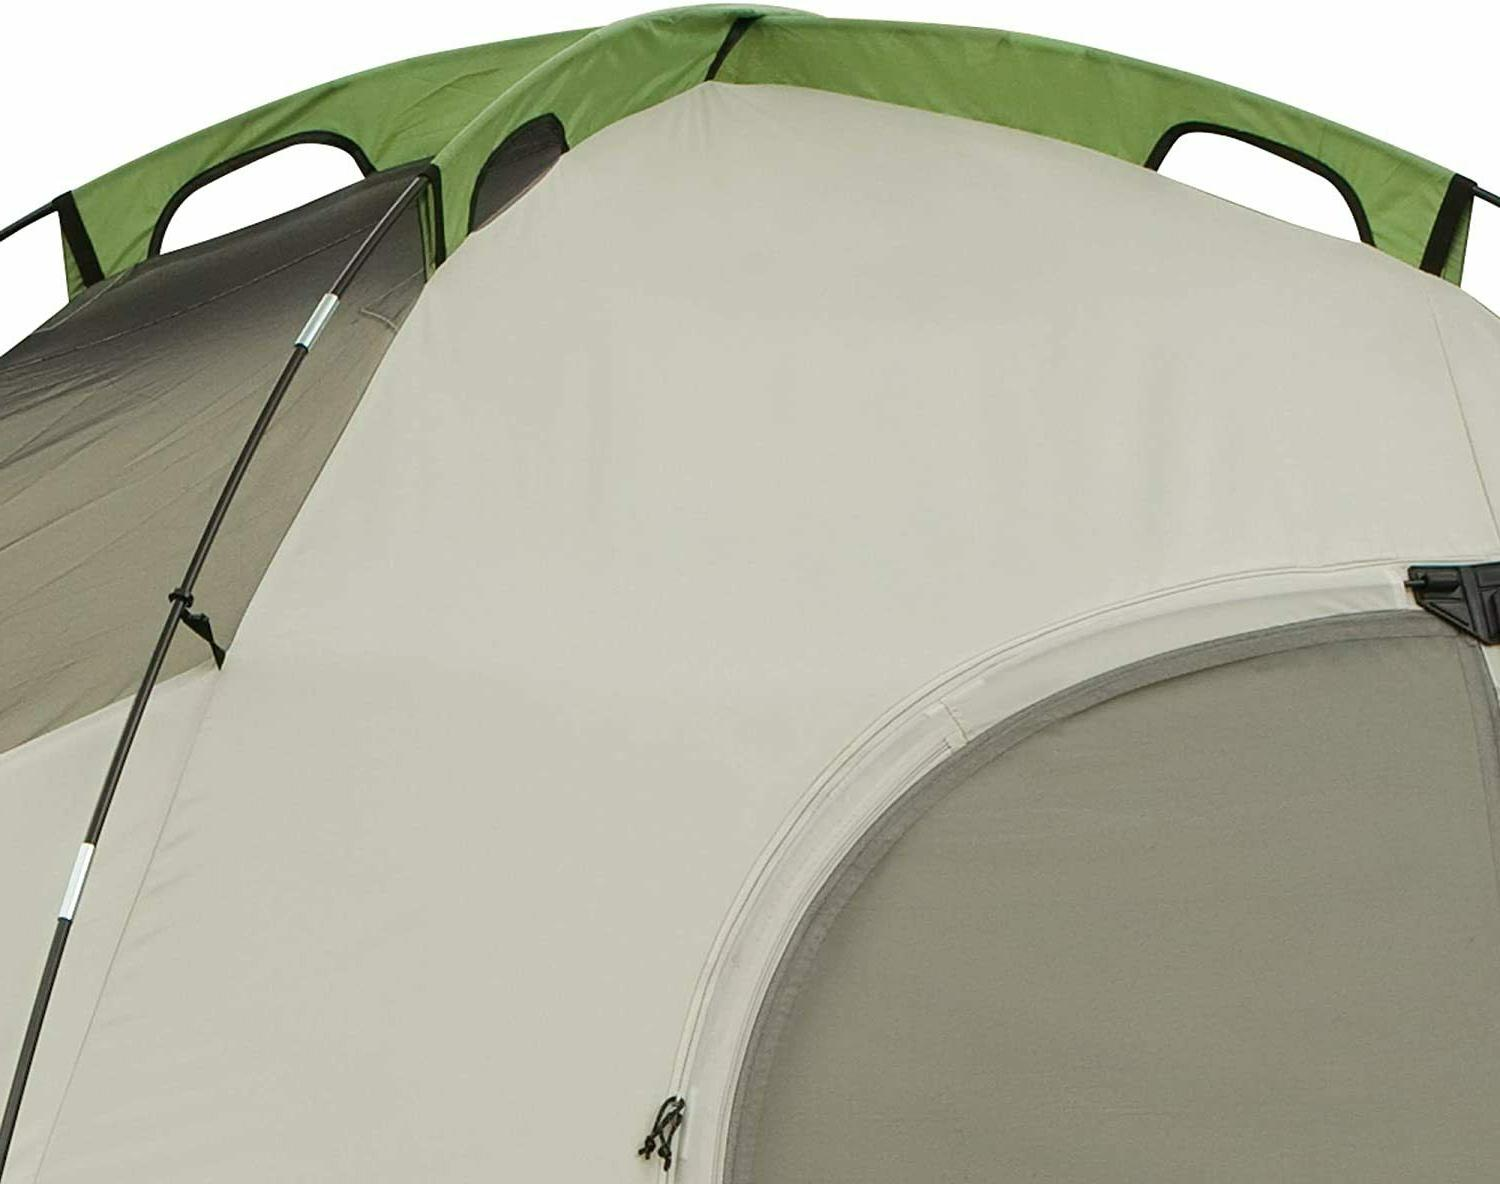 Coleman Tent for Camping Montana Tent with Easy Setup, Green, New